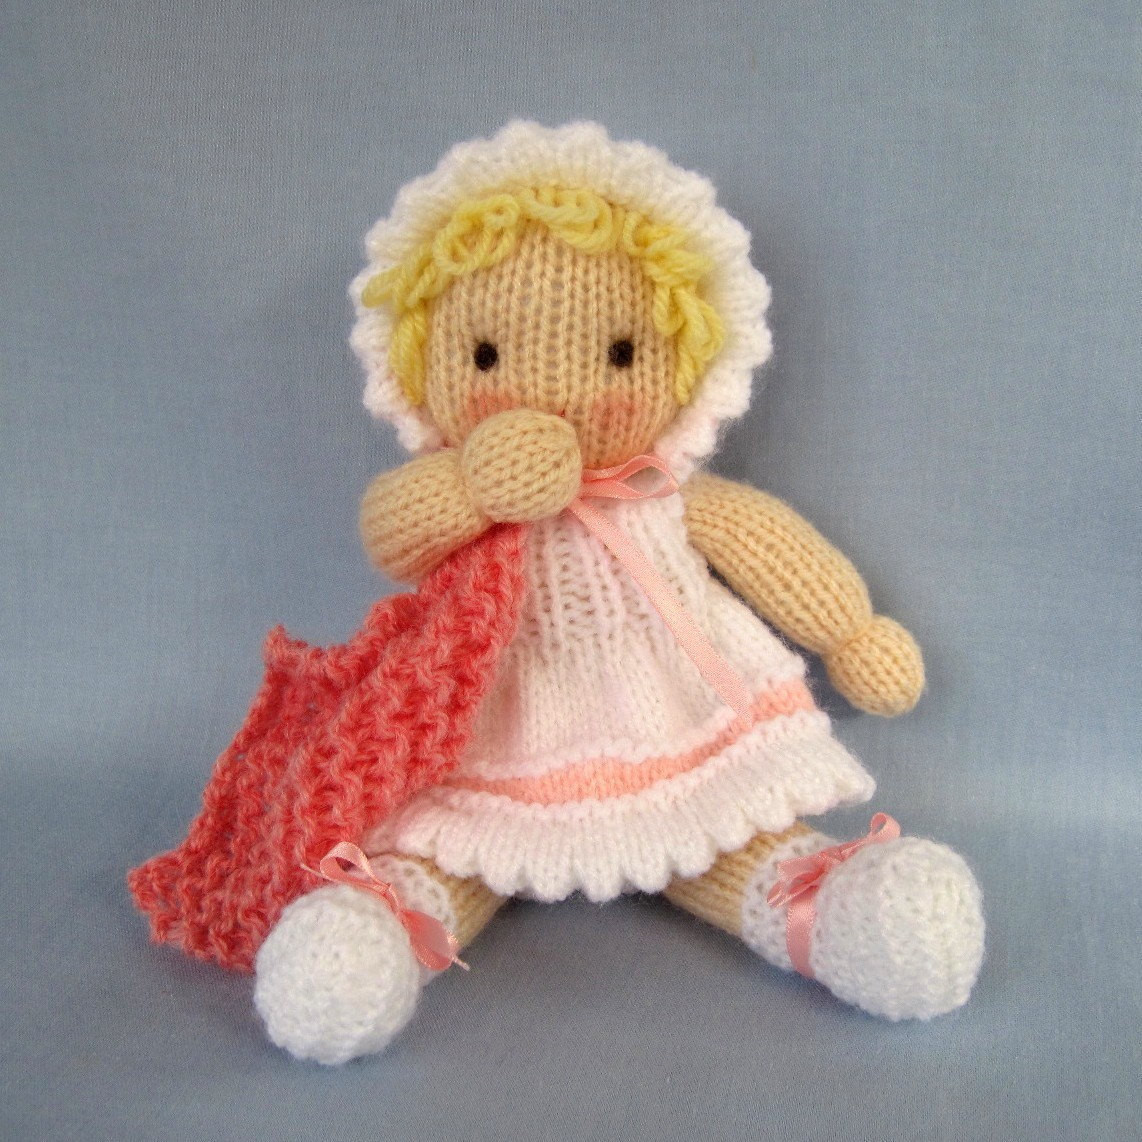 Awesome Knit Patterns for Dolls Free Patterns Free Doll Patterns Of Unique 47 Photos Free Doll Patterns